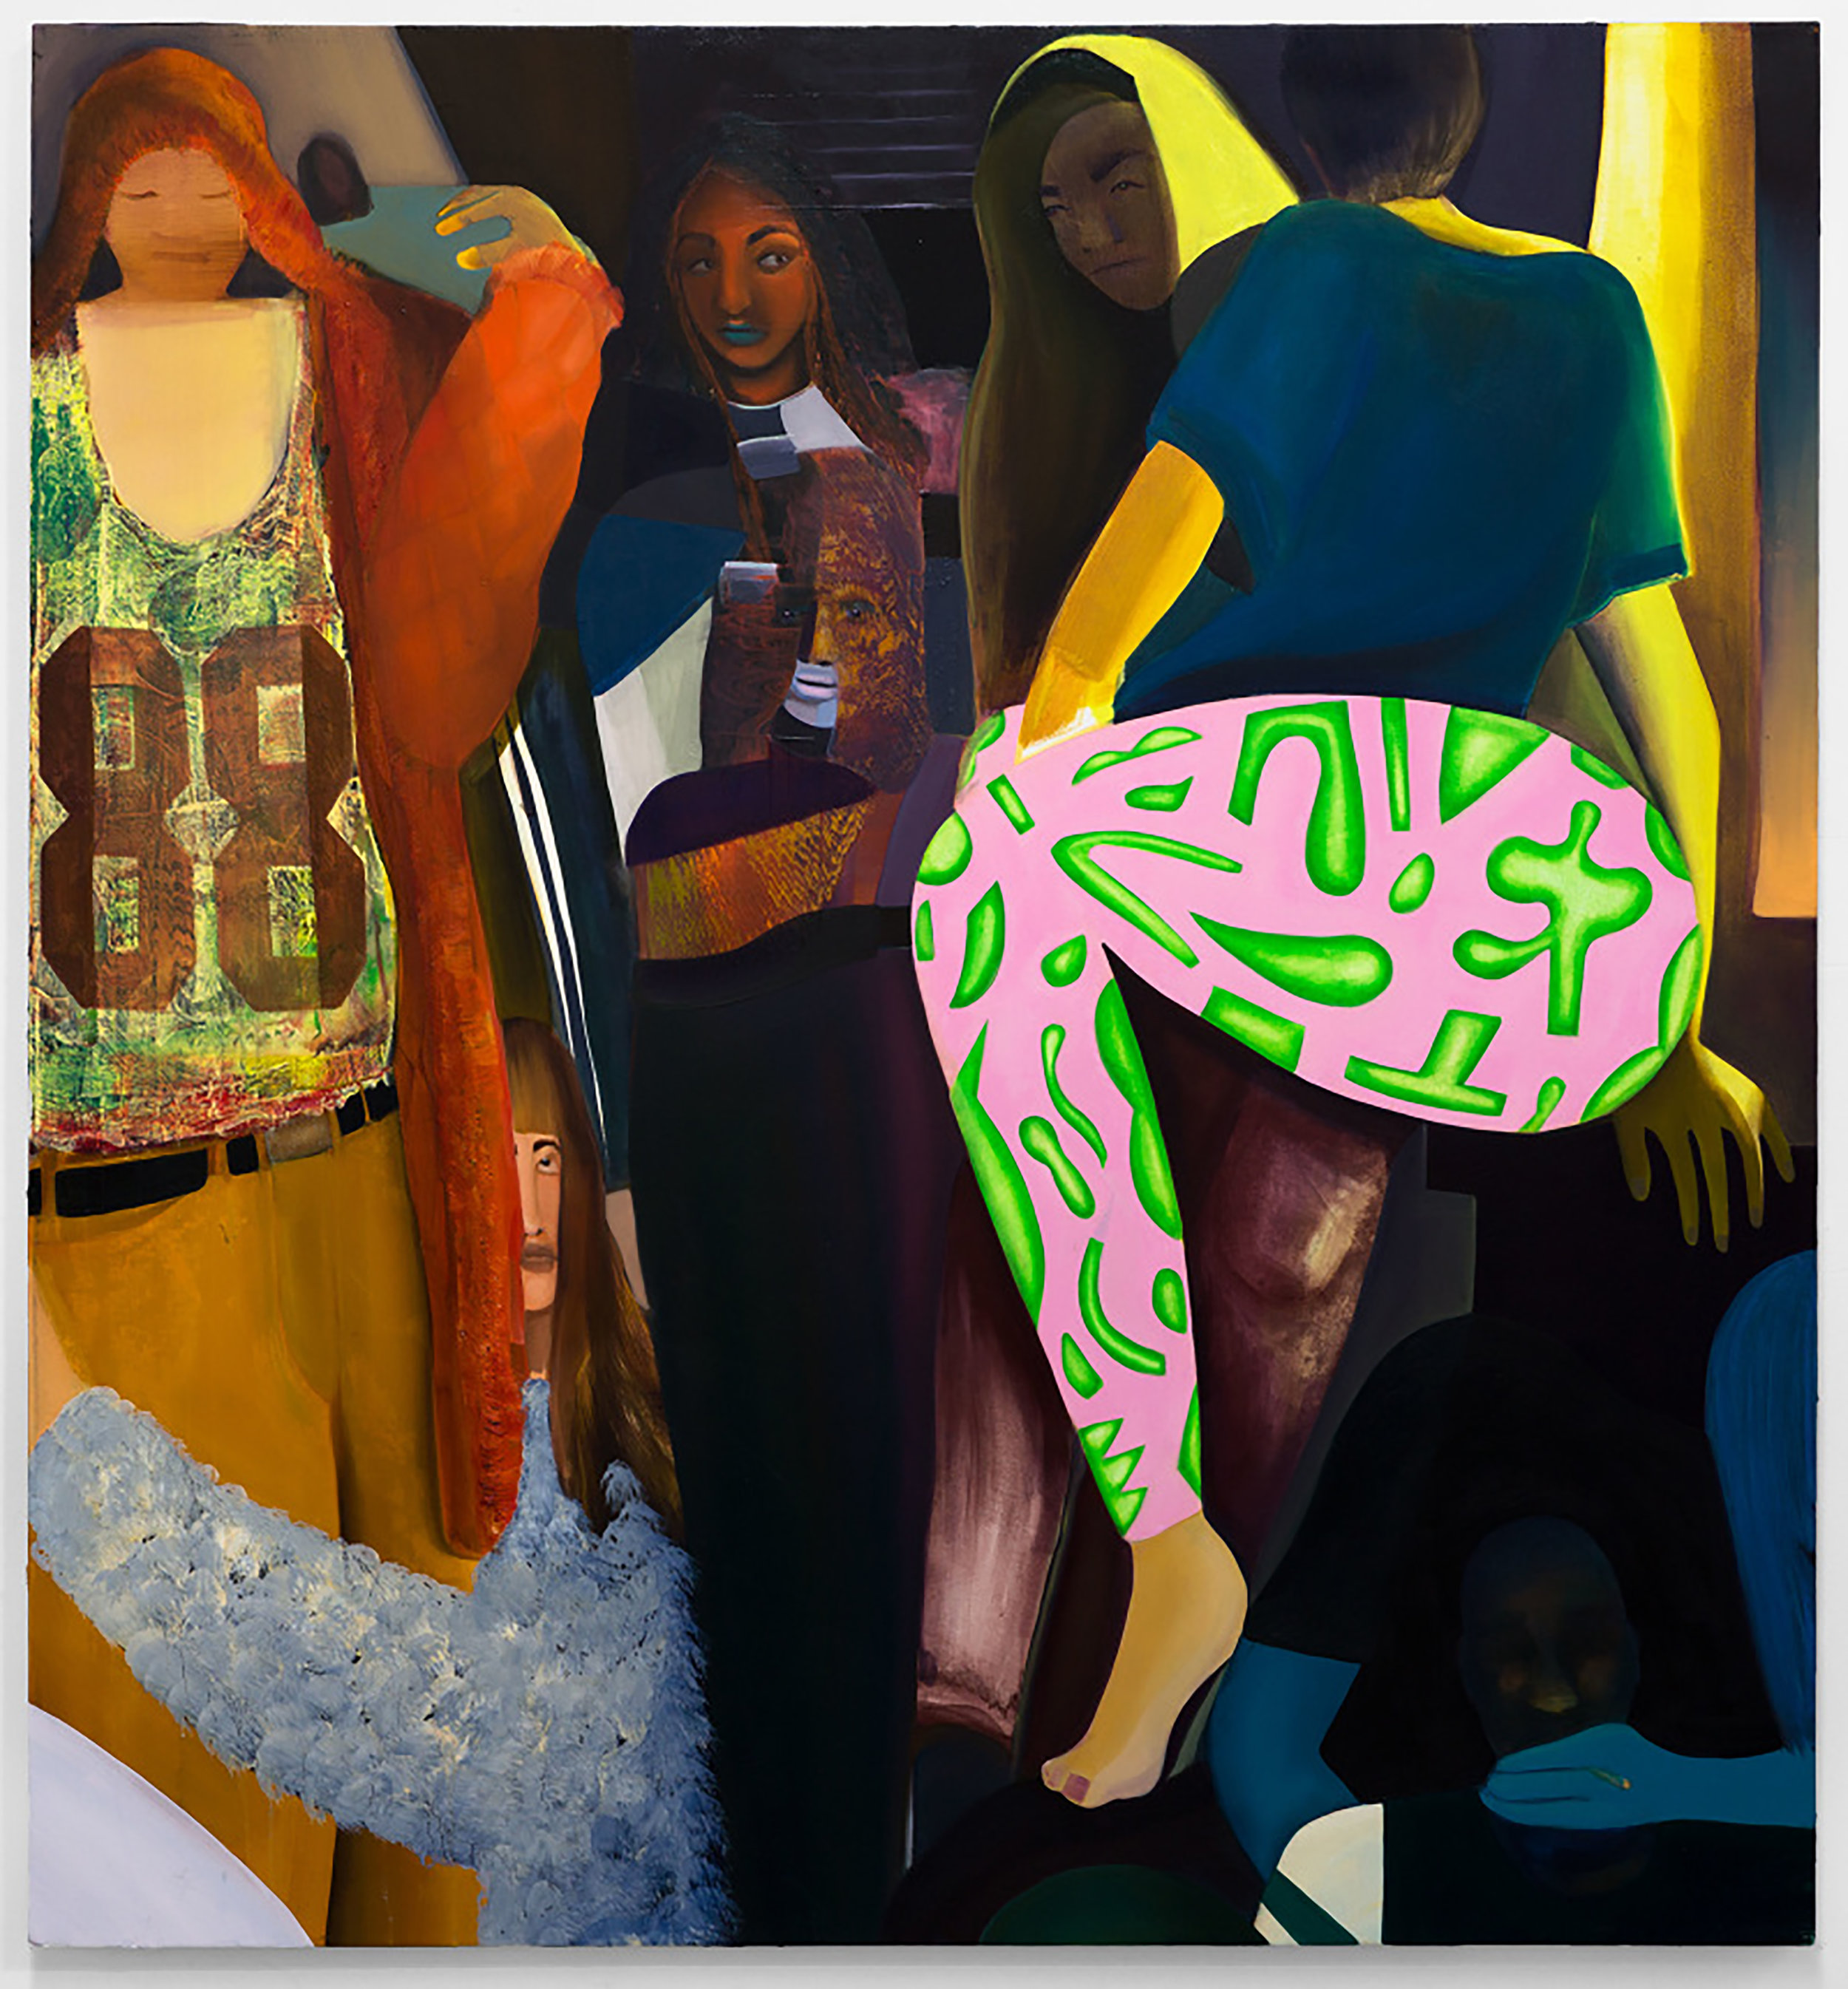 Coady Brown, House Party, oil on canvas, 56 x 52 inches